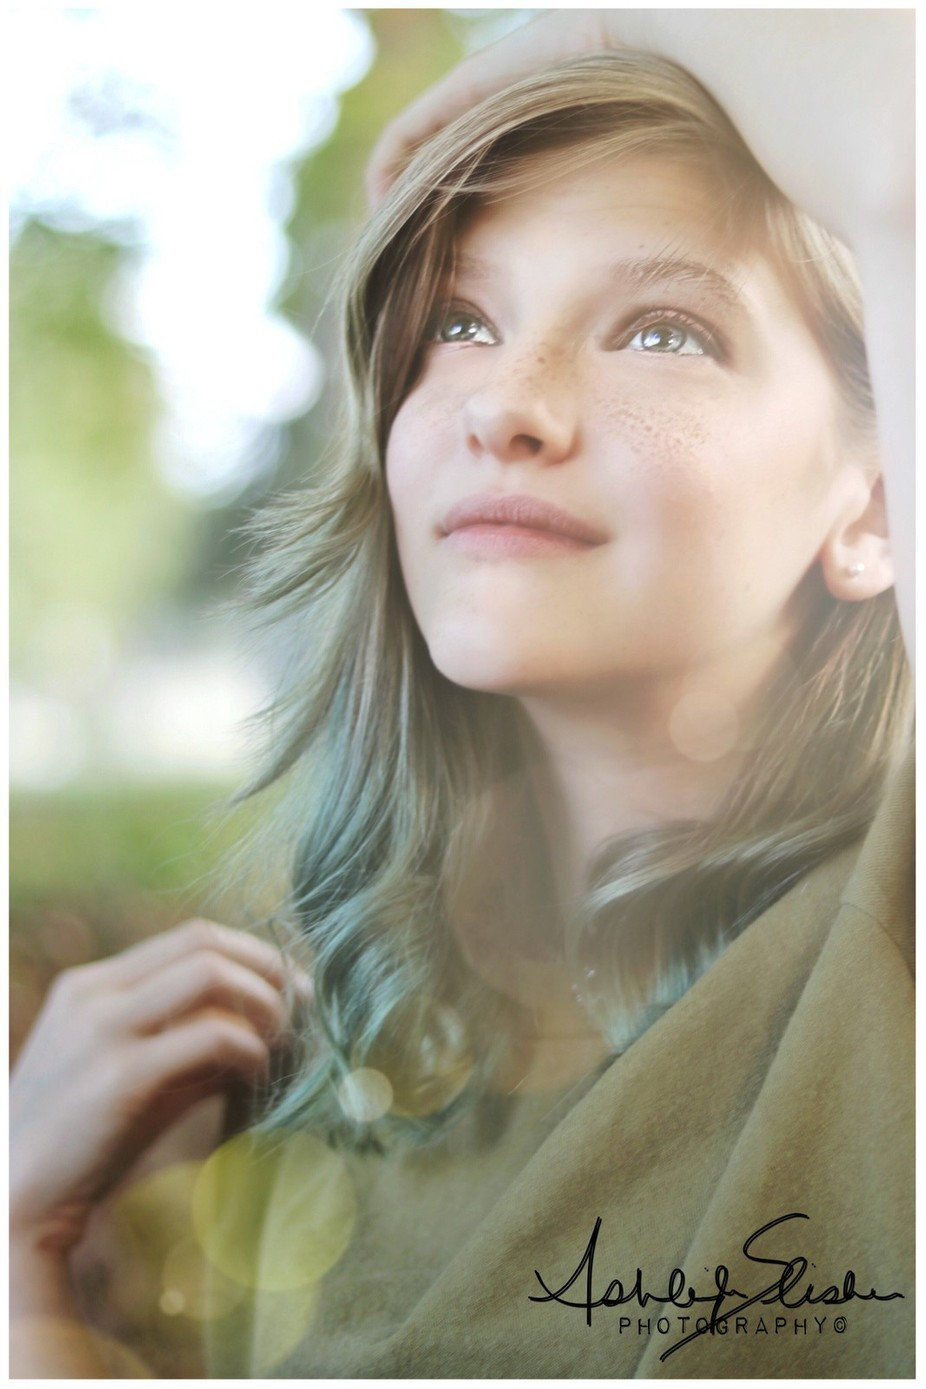 Warm sun on your face during a chilly winter day ~ Ashleigh Slisher Photography by Ashleighslisher - People With Bokeh Photo Contest